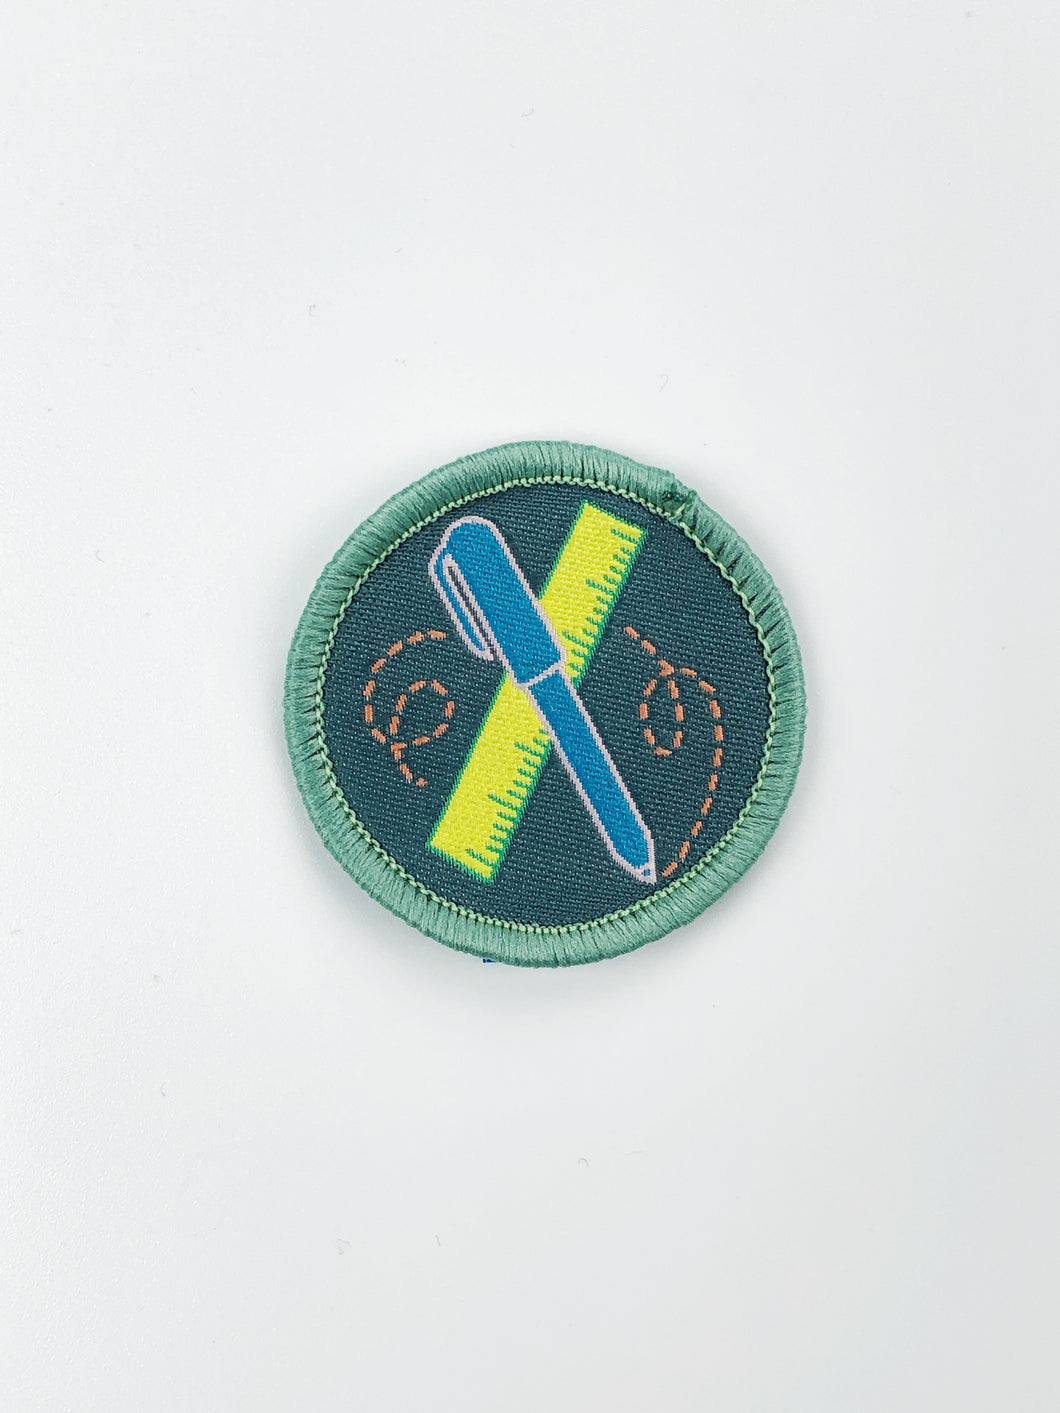 Quilt Cadets Merit Badge: Design Badge